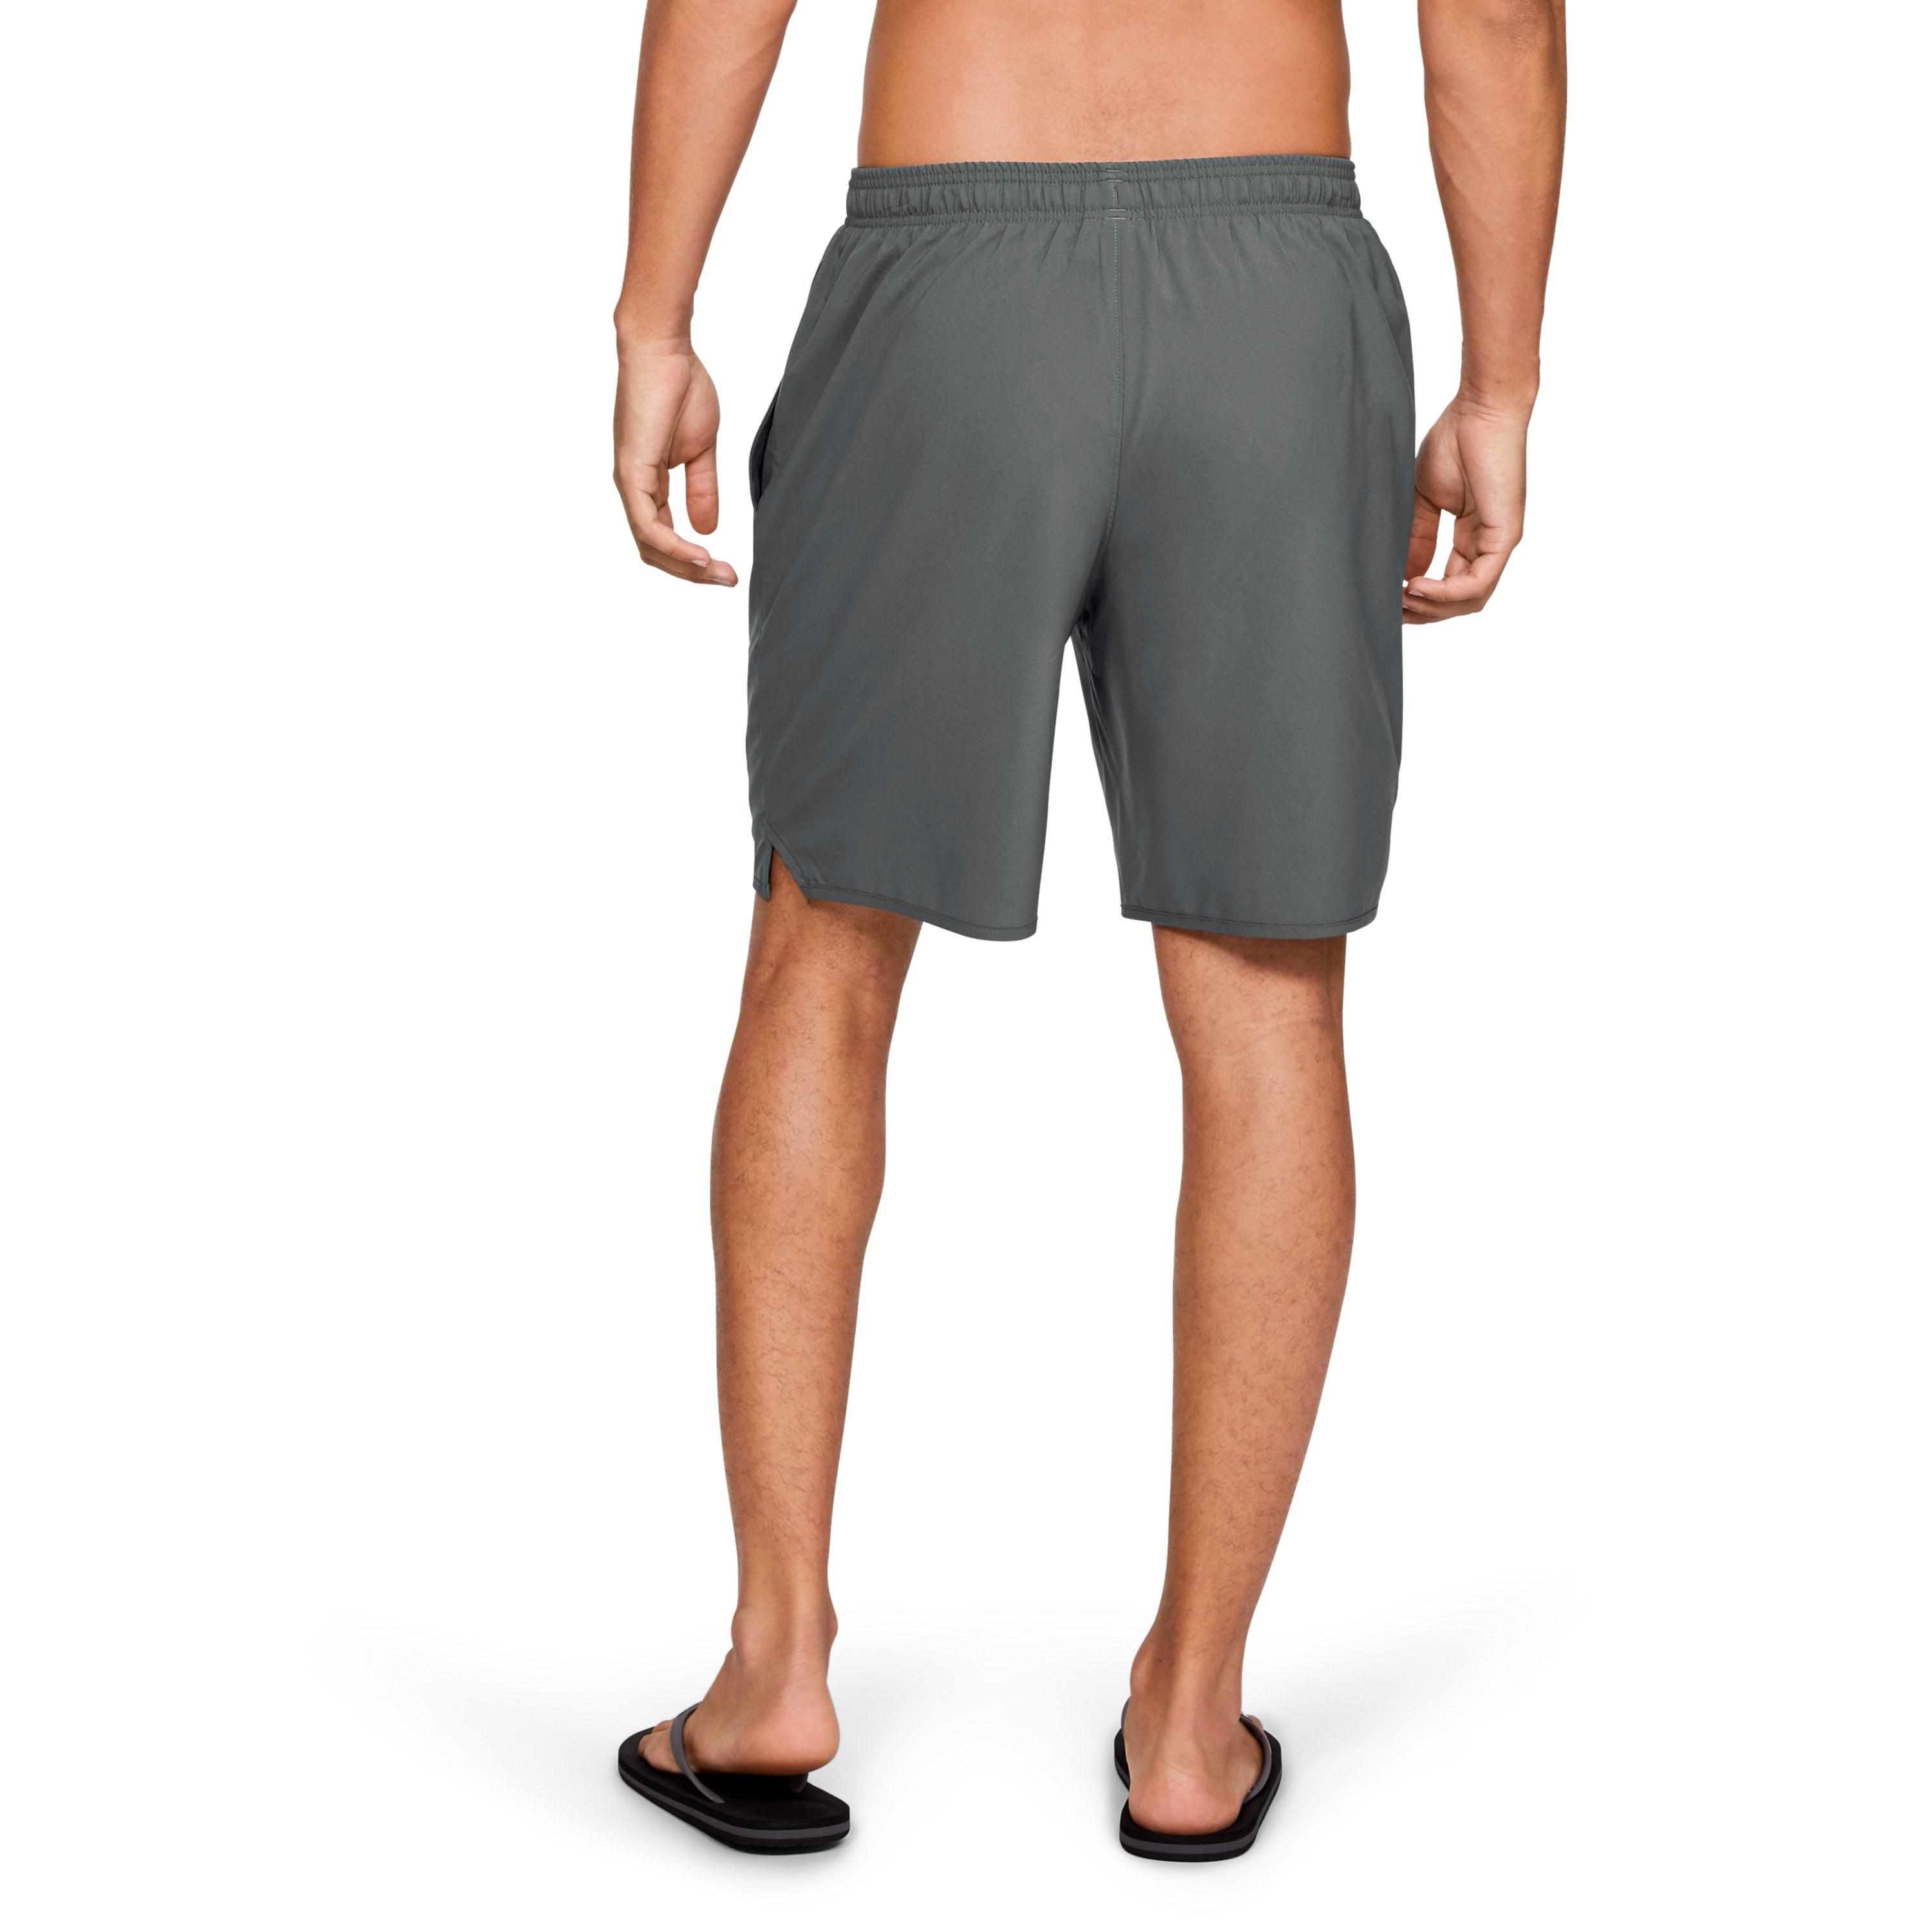 75fe5a4ab46f8 Lyst - Under Armour Men's Ua Dockside Volley Shorts in Gray for Men